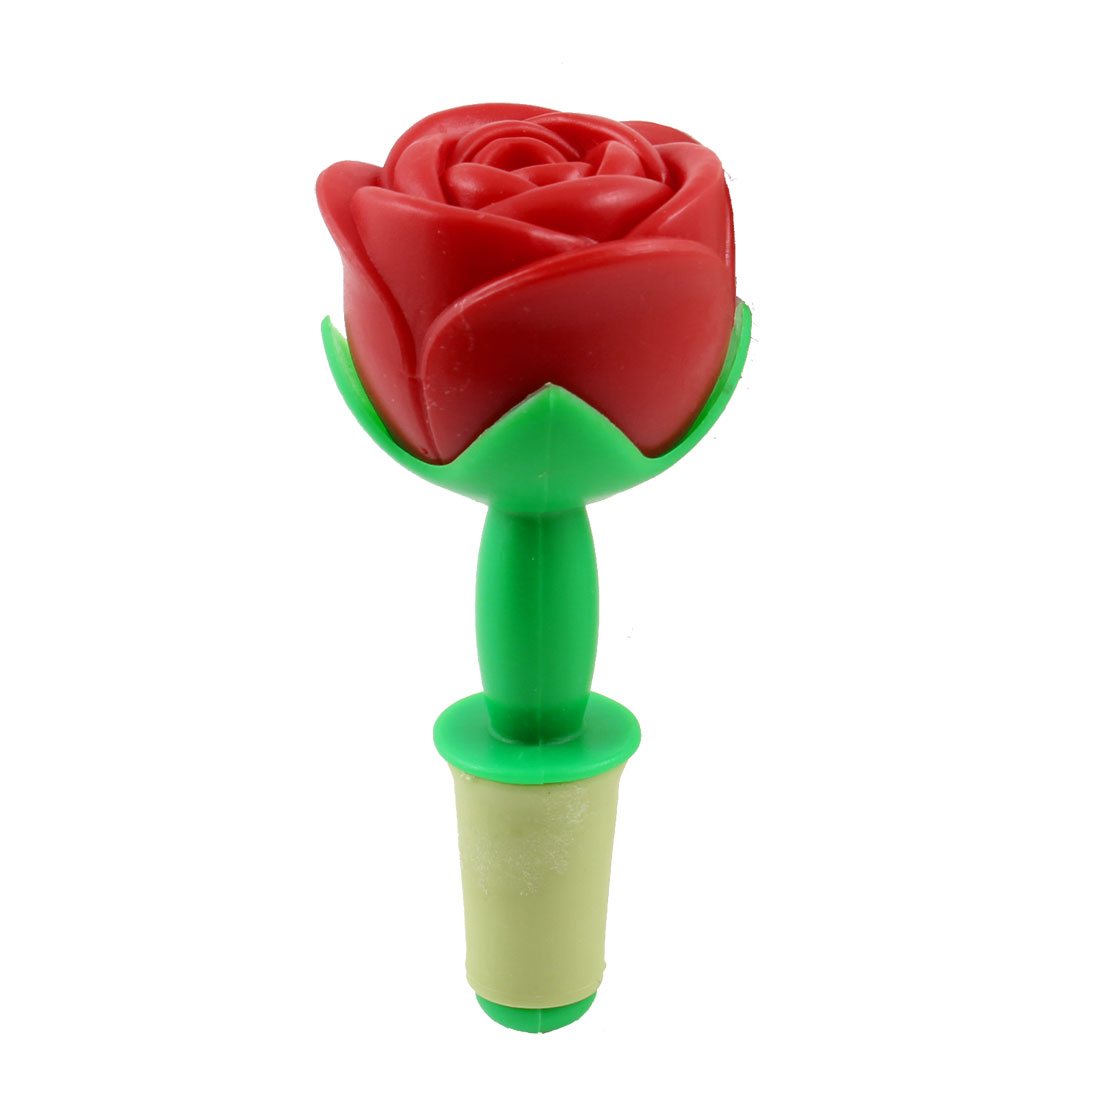 Plastic Red Rose Design Beige Rubber Wine Bottle Stopper